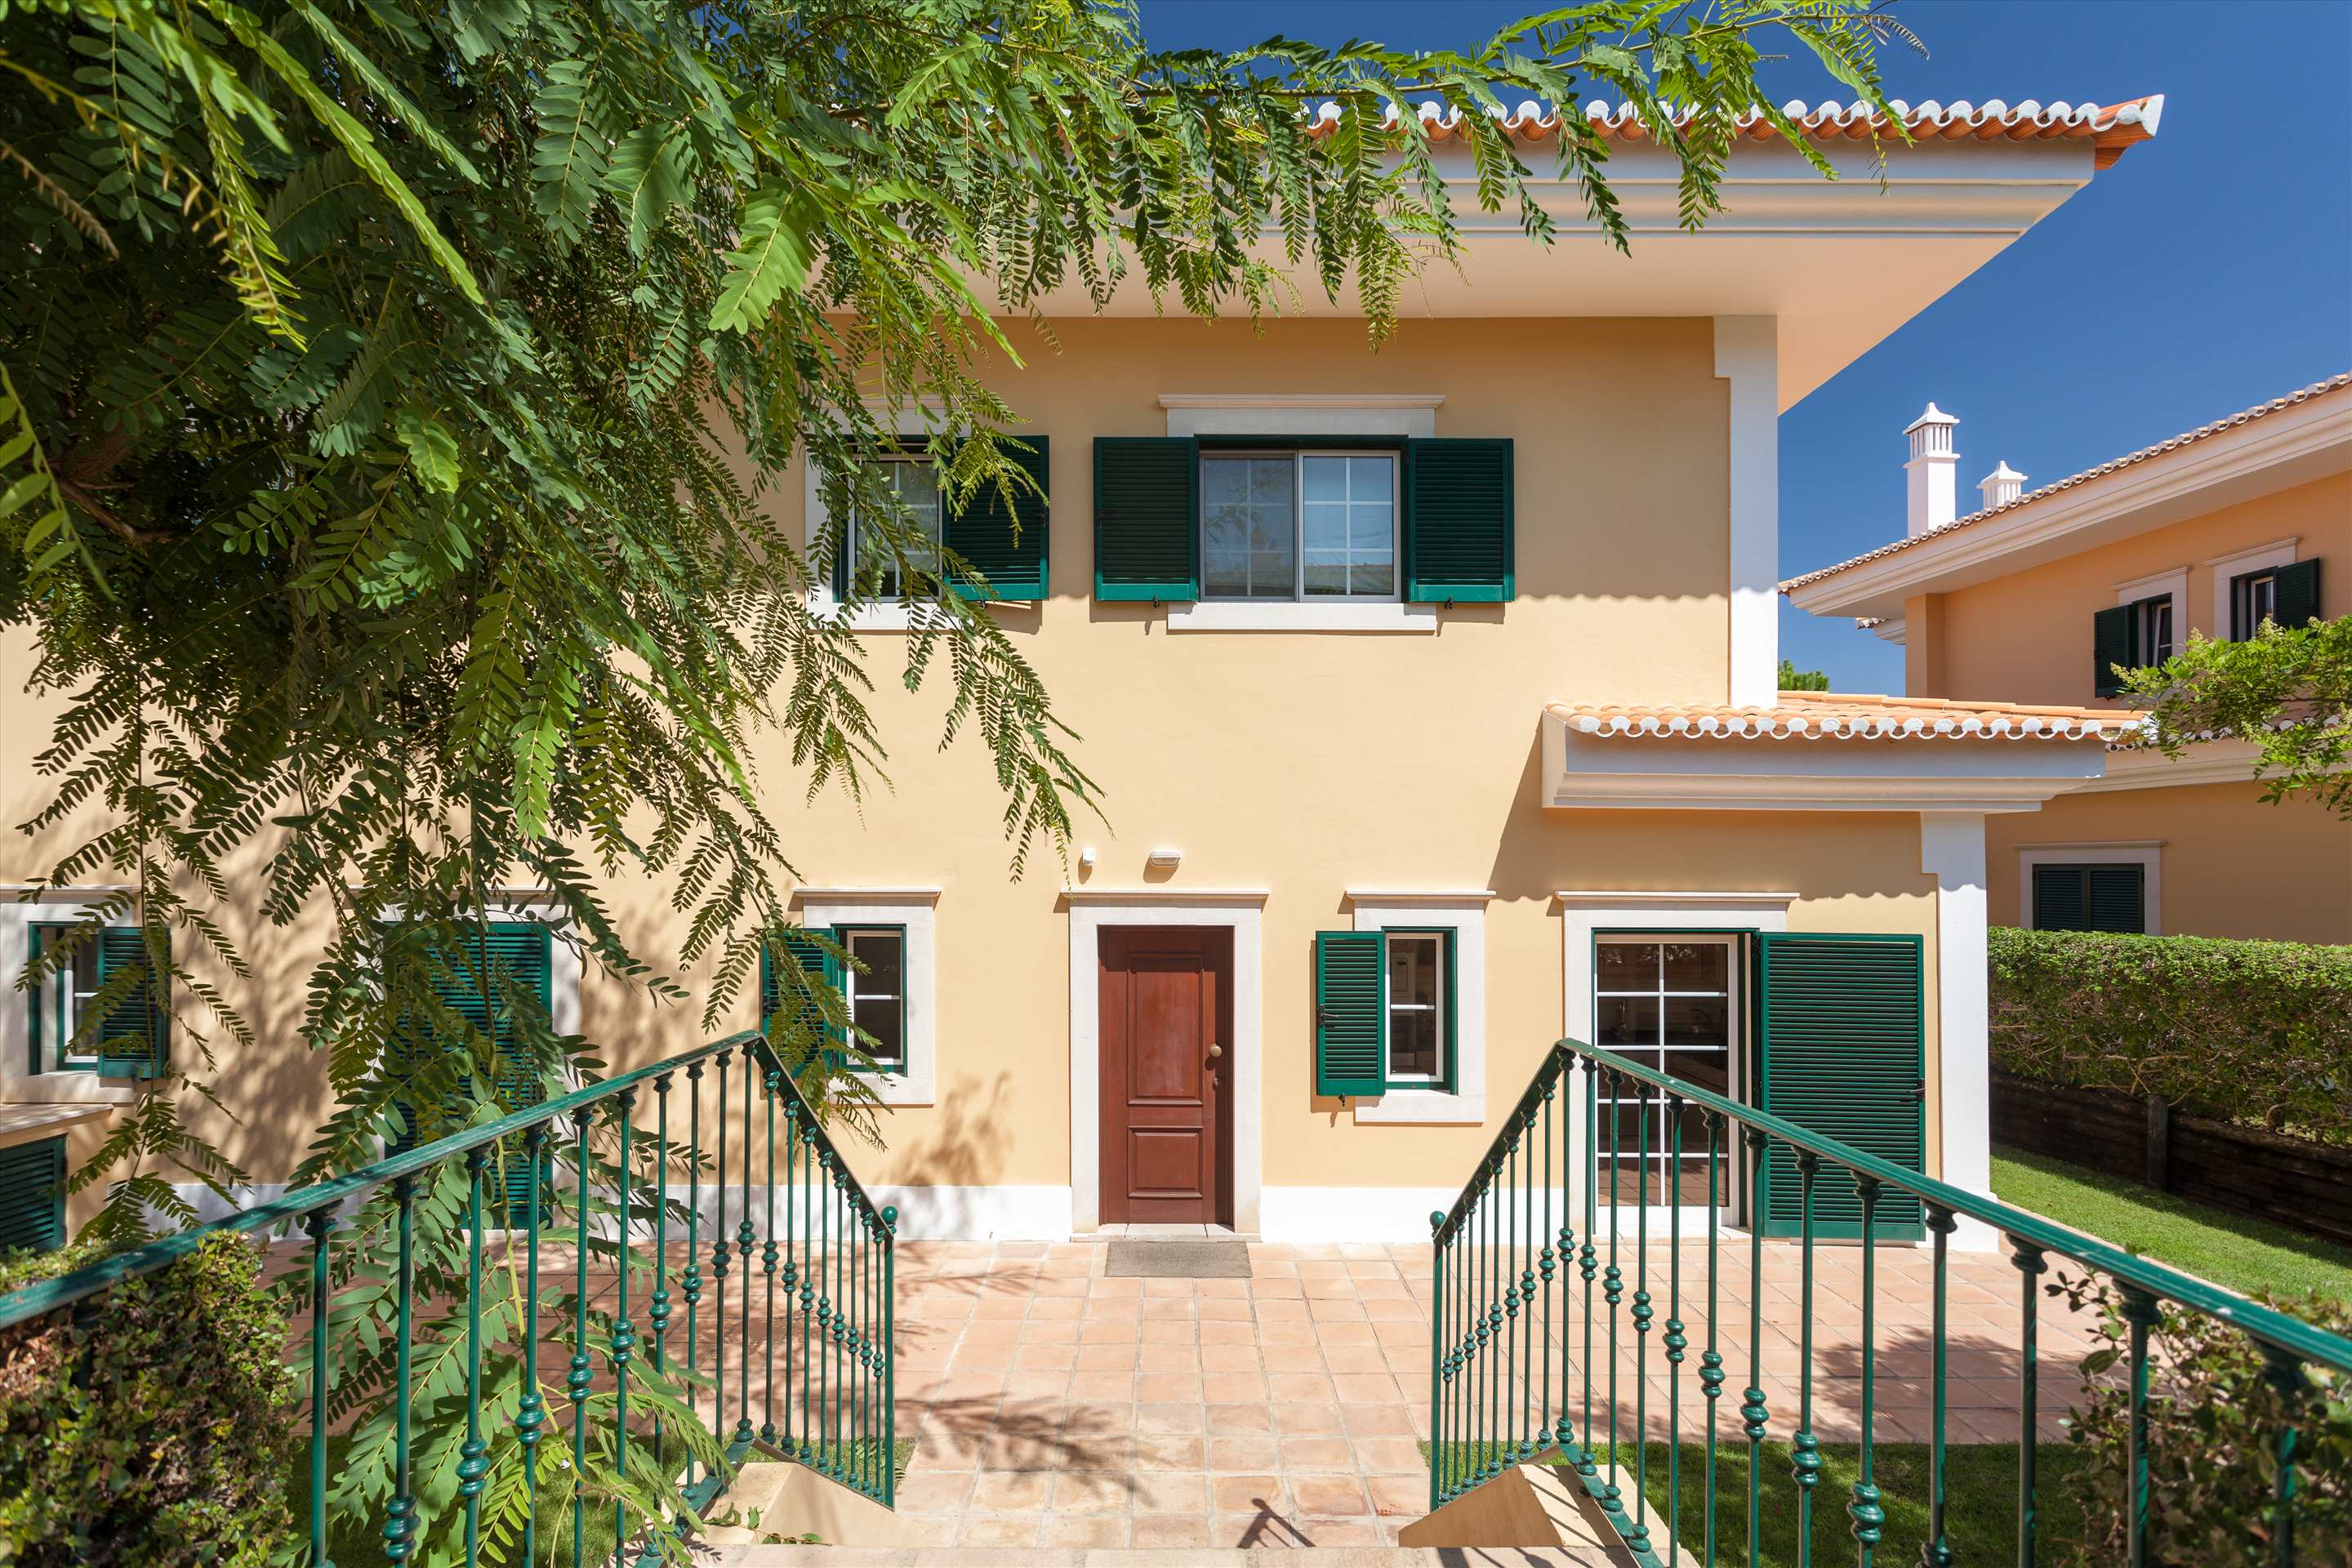 Martinhal Quinta Townhouse (3 Bedroom), 3 bedroom villa in Martinhal Quinta Resort, Algarve Photo #14